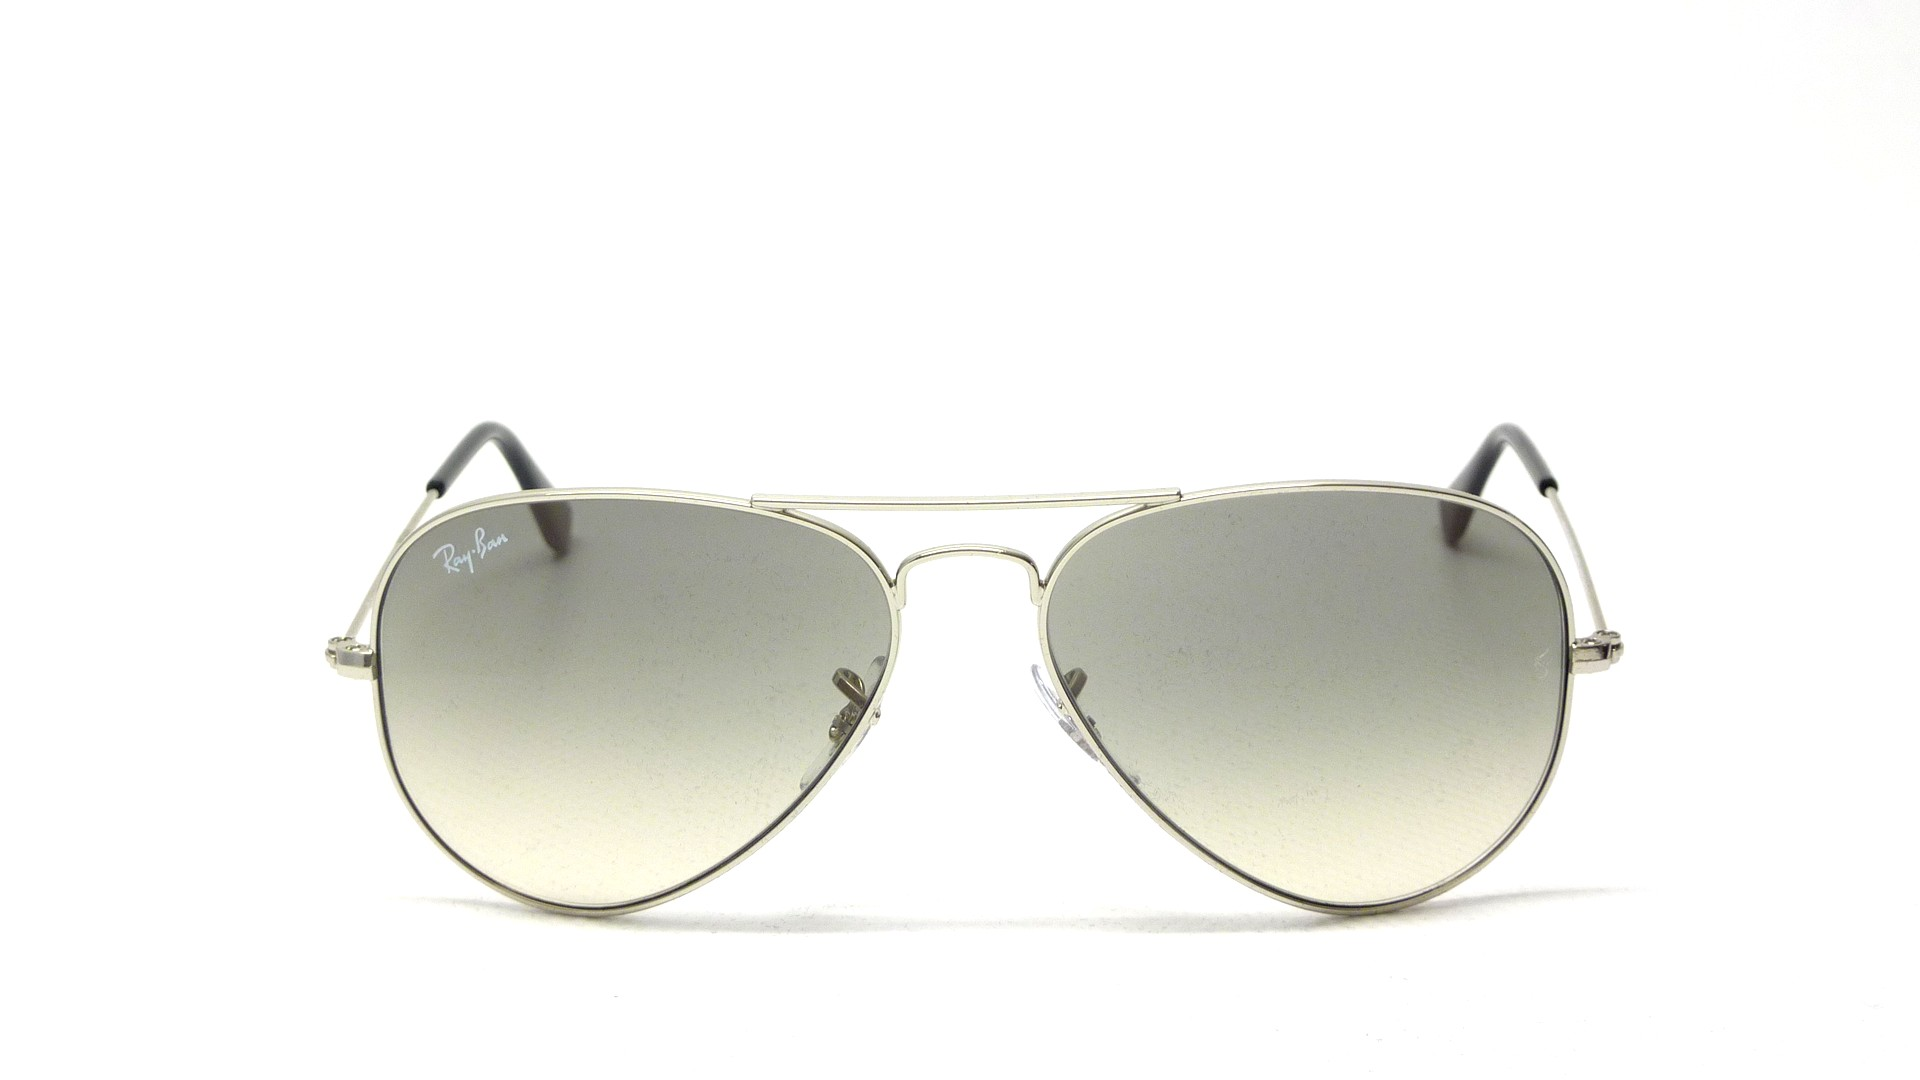 02d0c68f82 Ray-Ban Aviator Large Metal Silver RB3025 003 32 55-14